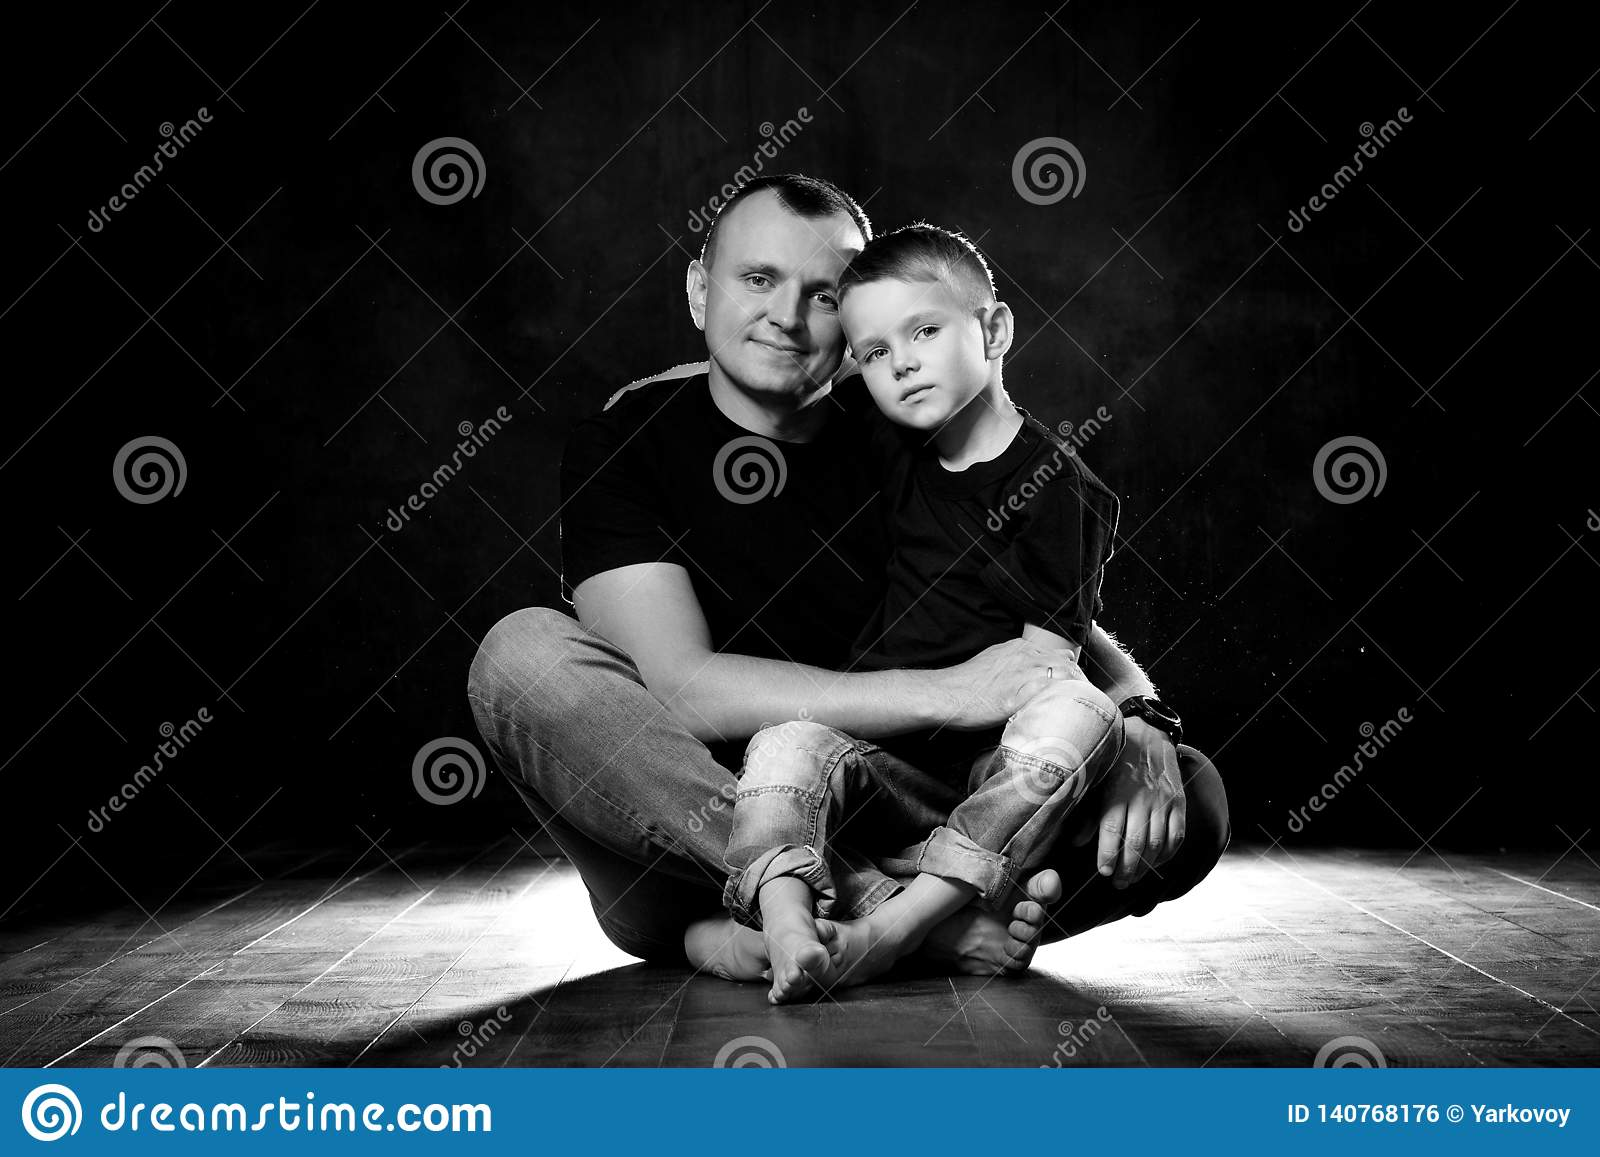 Father holds son in his arms and hugs him. Man and boy are sitting together against a black background. Happy fatherhood and